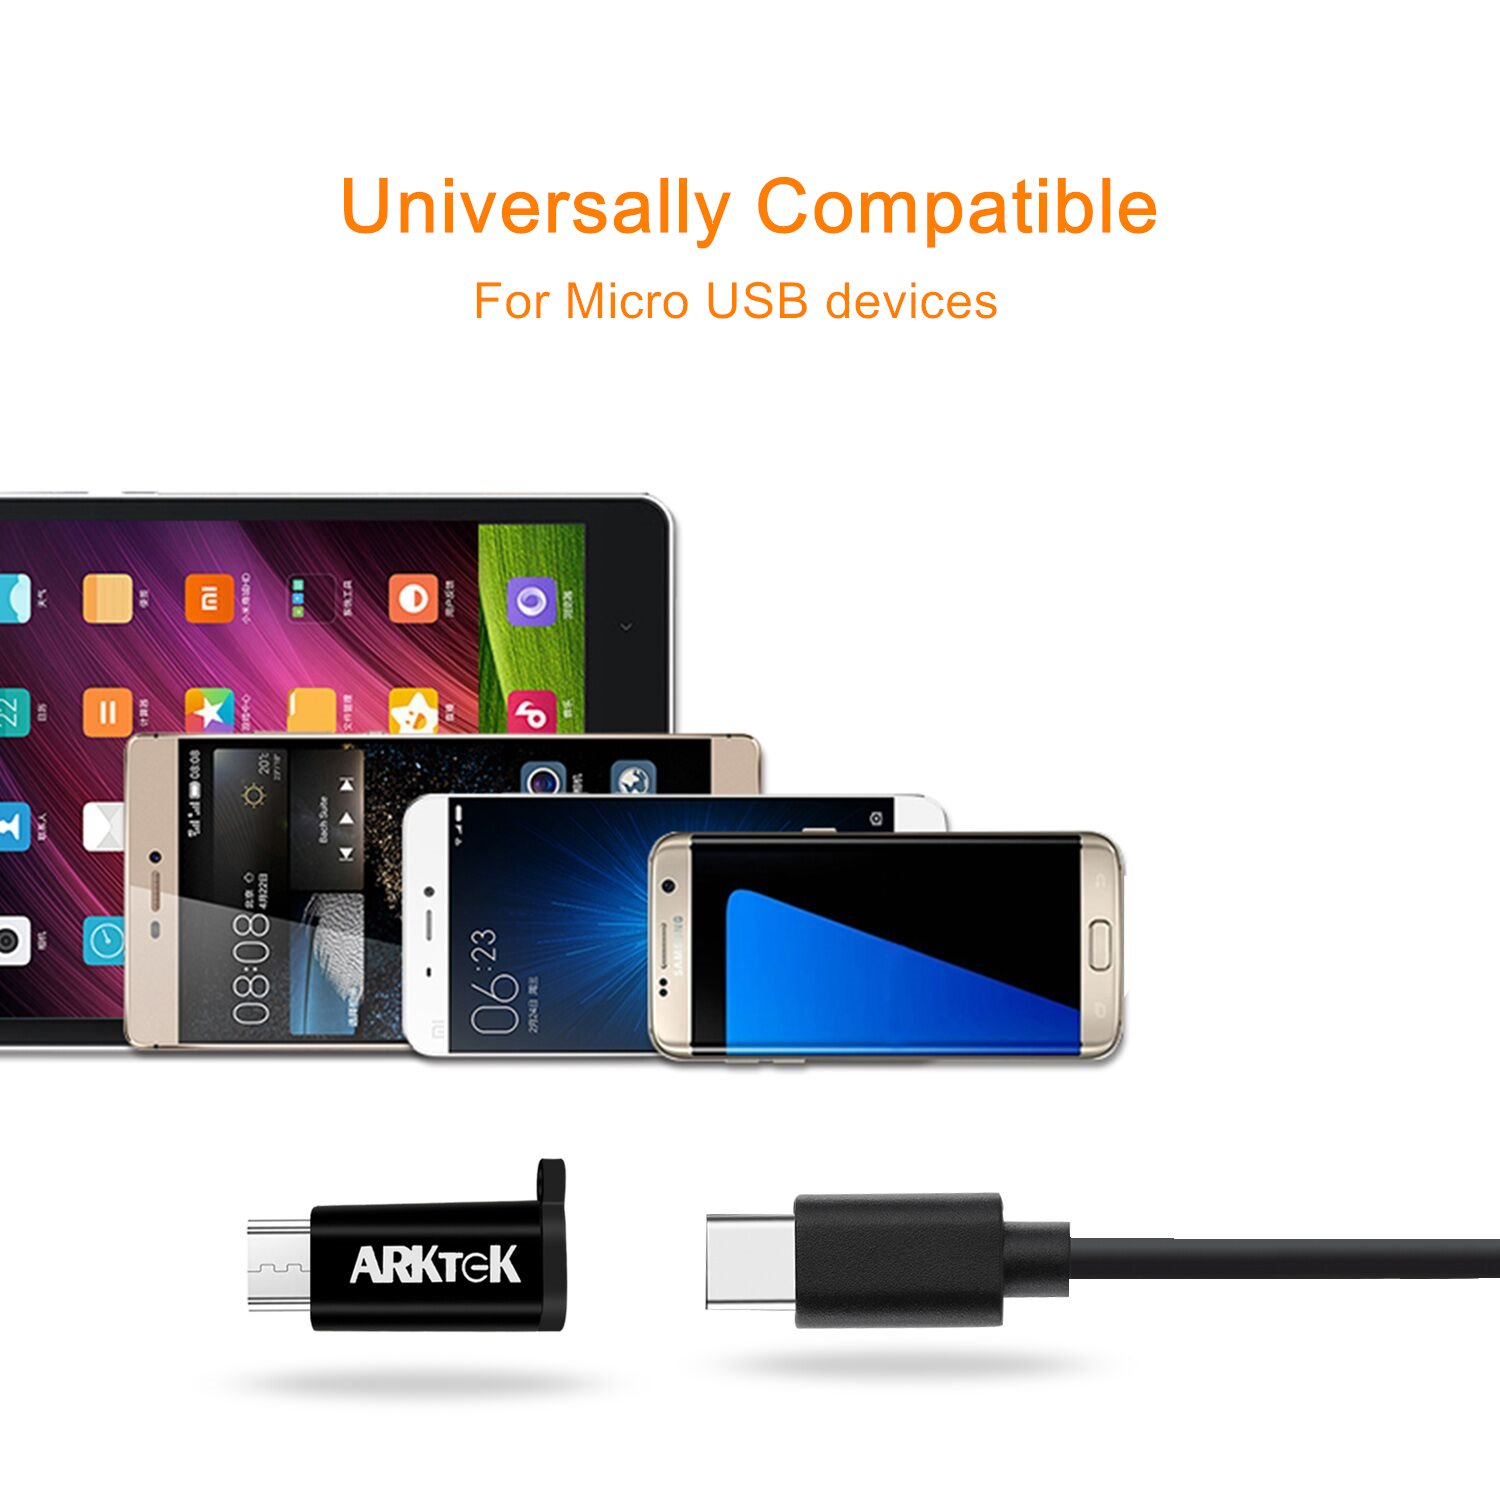 ARKTEK USB-C Adapter USB Type C (Thunderbolt 3) to Micro USB (Male) Sync and Charging Adapter with Keychain for Digital Camera Power Bank Samsung Galaxy S7 and More (Pack of 2, Black) by ARKTEK (Image #7)